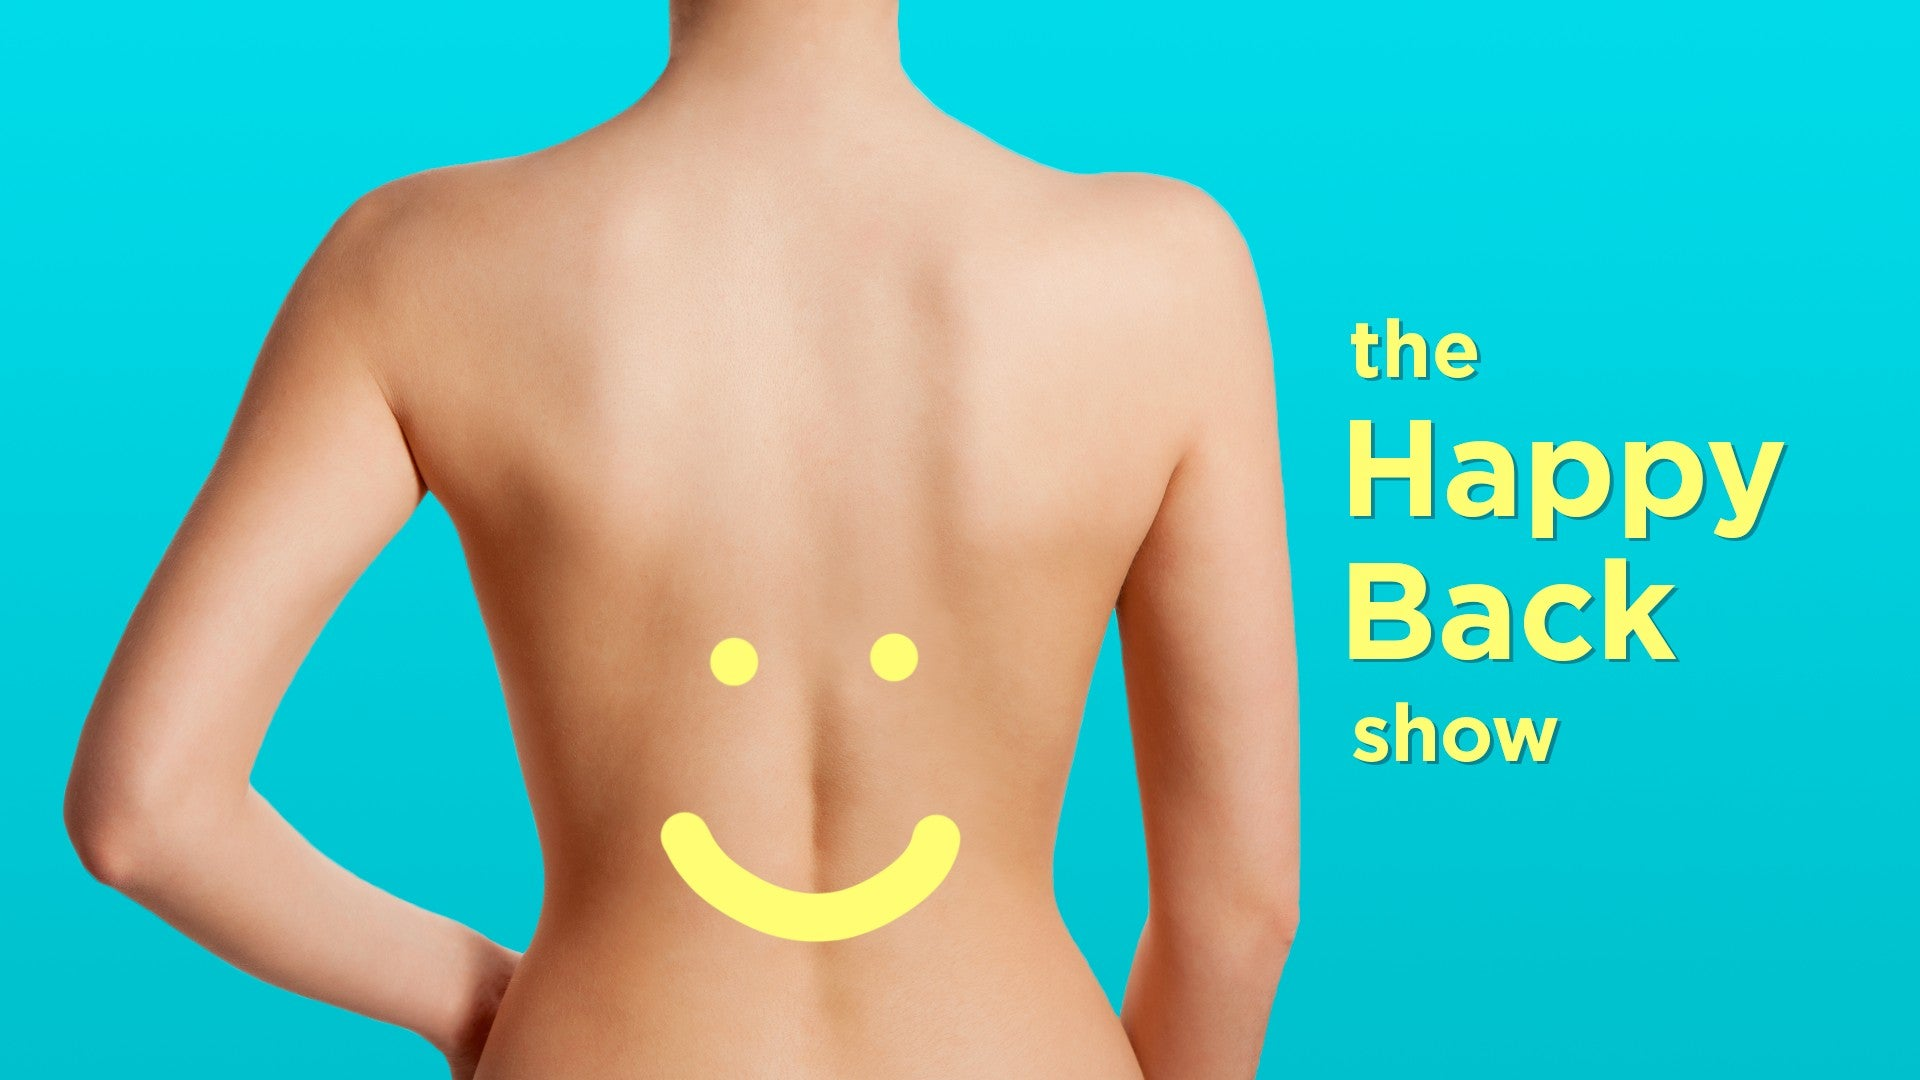 The Happy Back Show Artwork